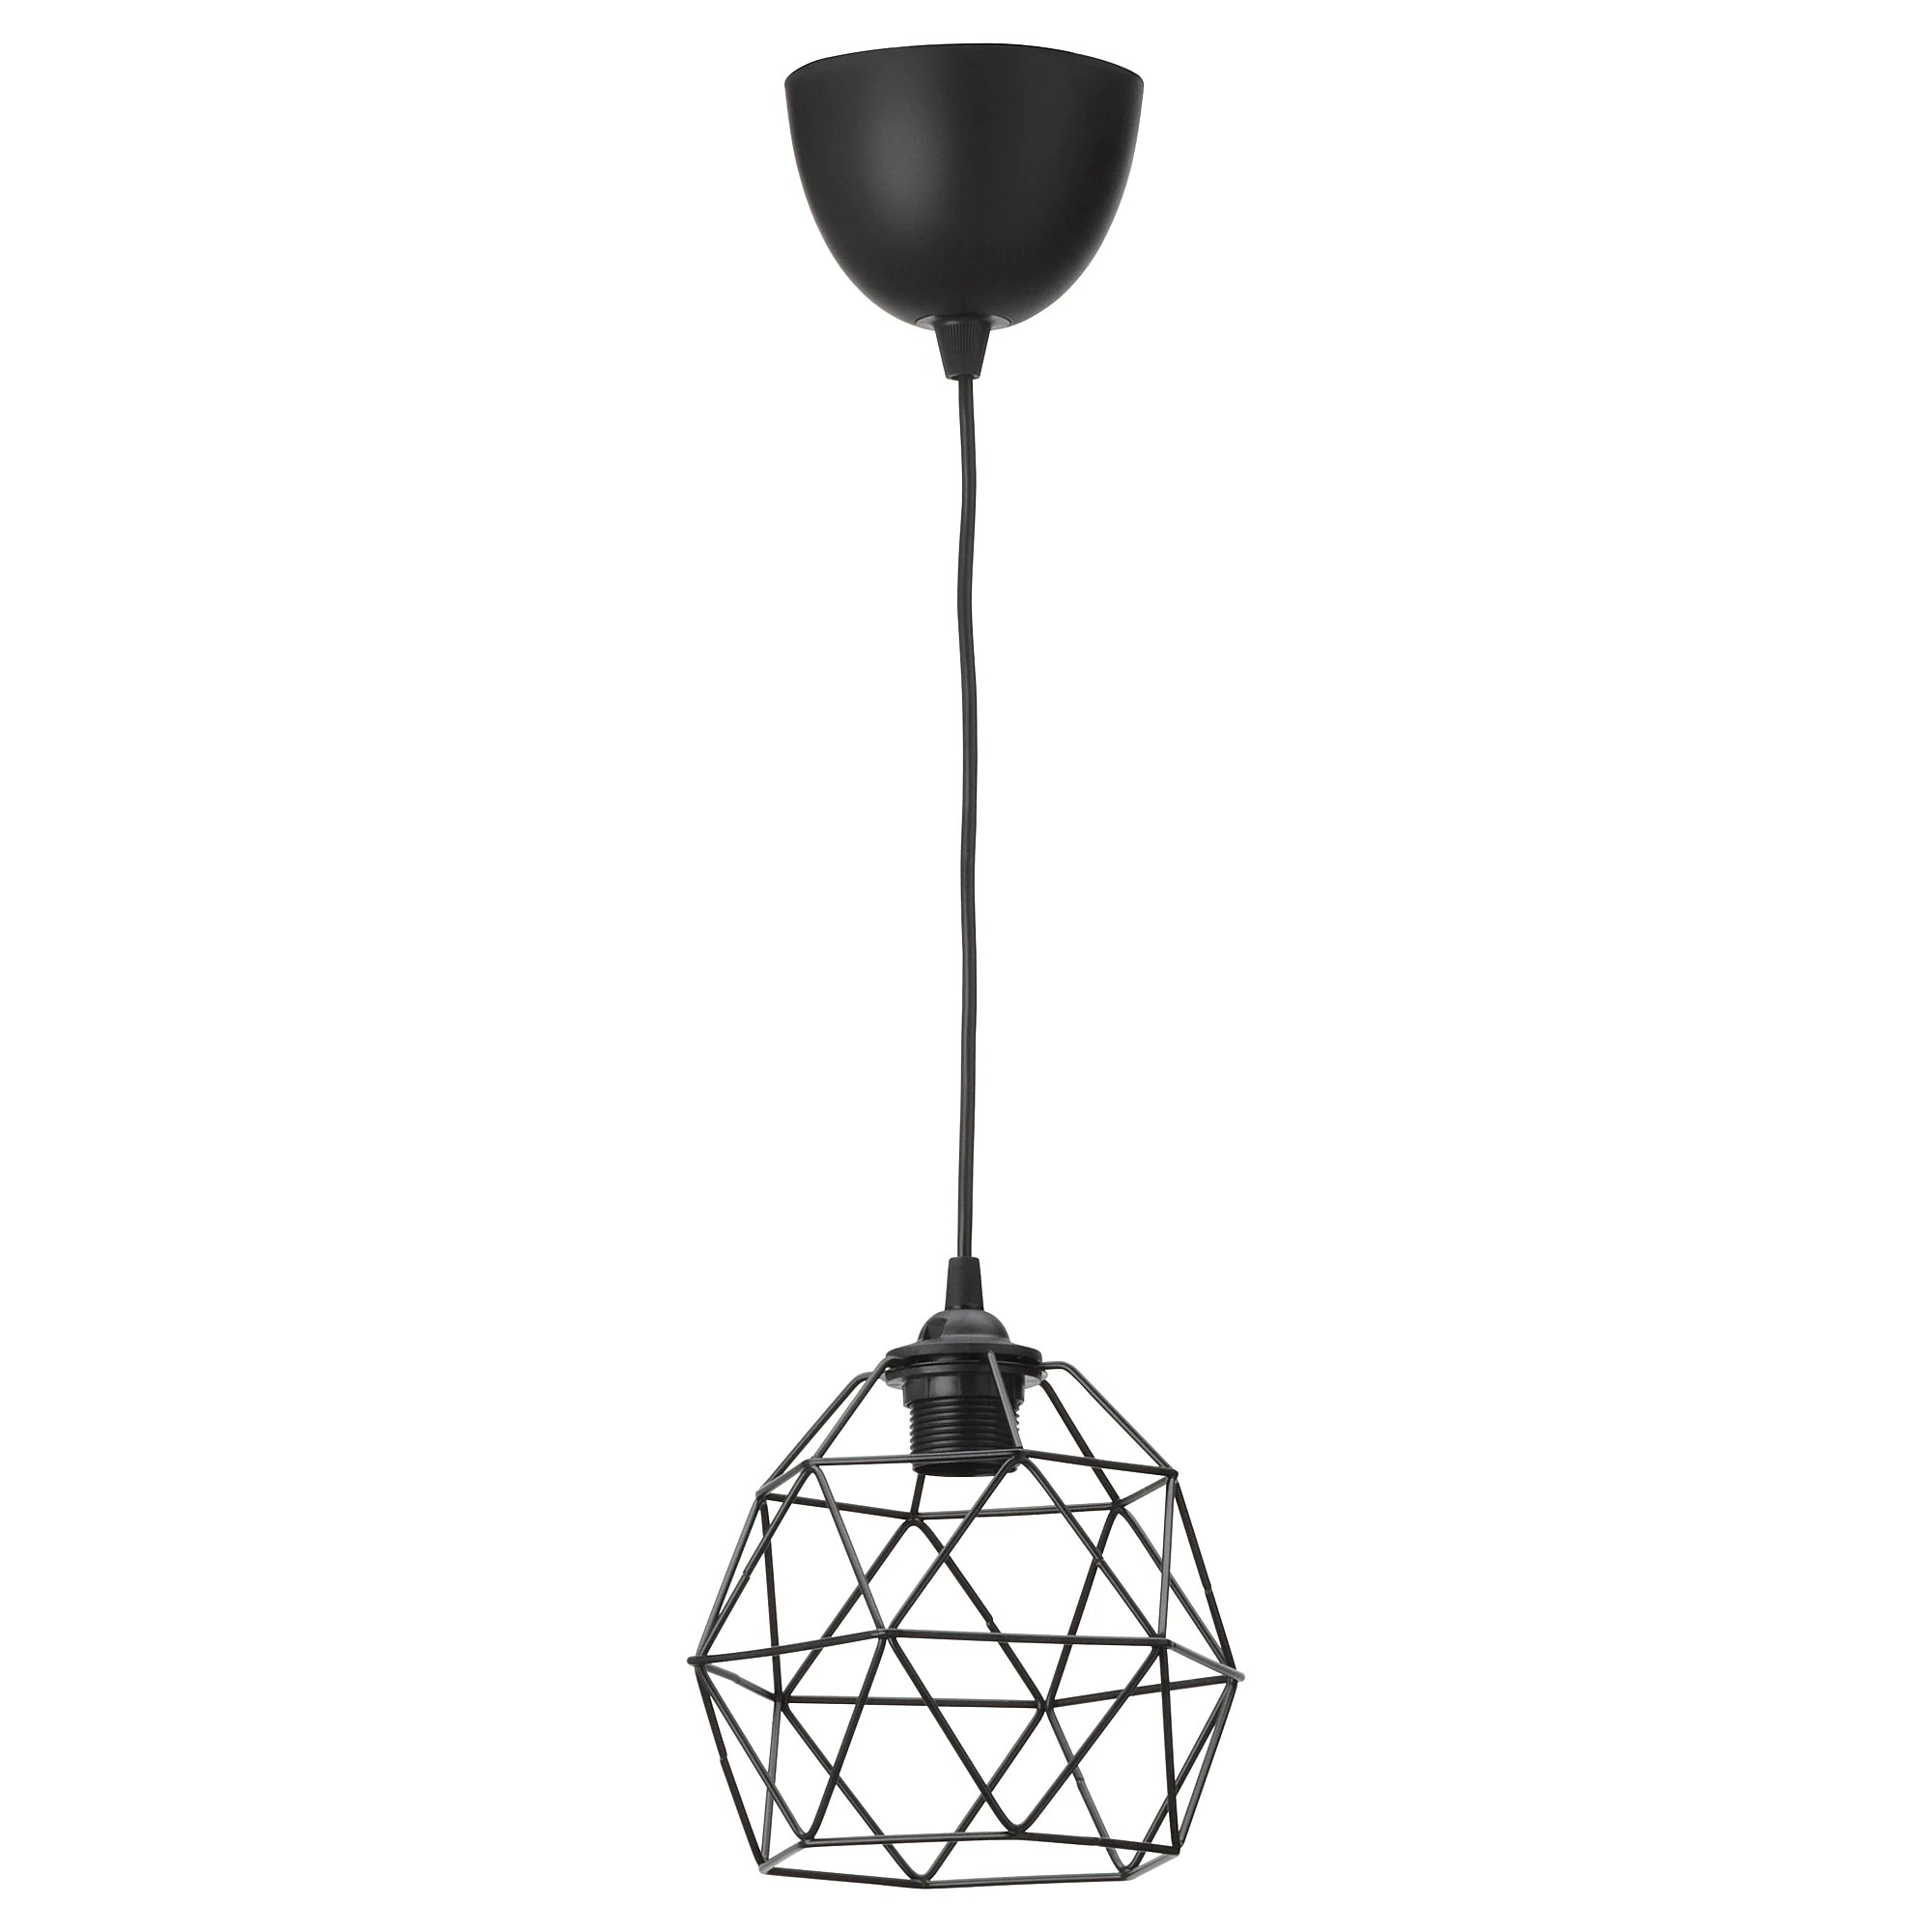 Suspension Ikea Cuivre Suspension Brunsta Hemma Noir